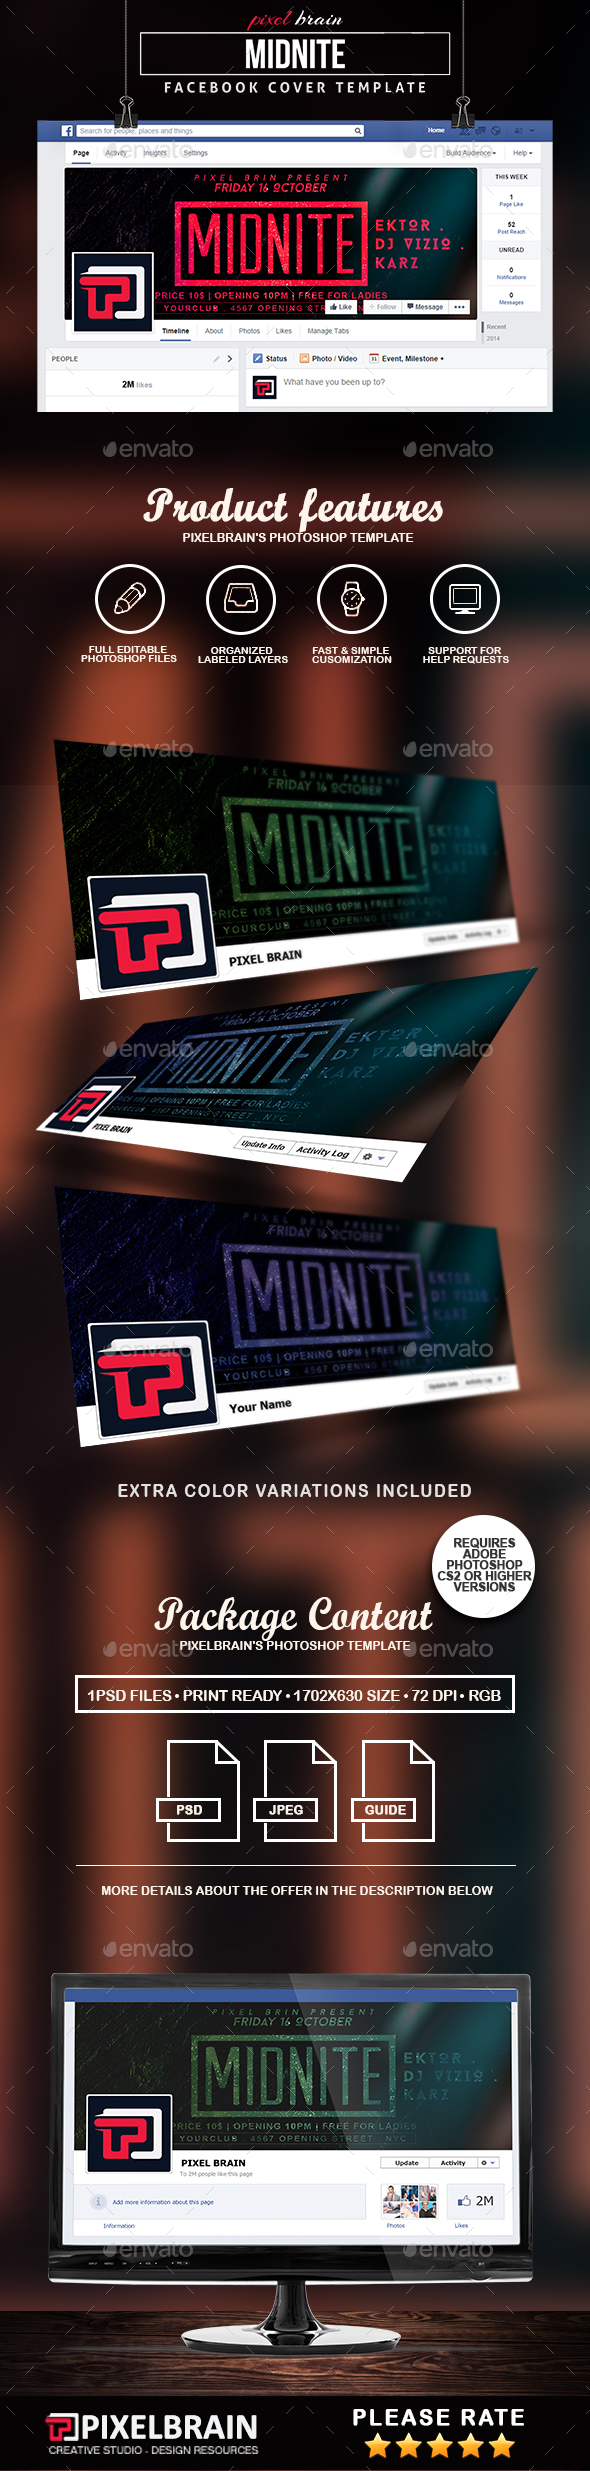 Midnite Facebook Cover Template - Facebook Timeline Covers Social Media